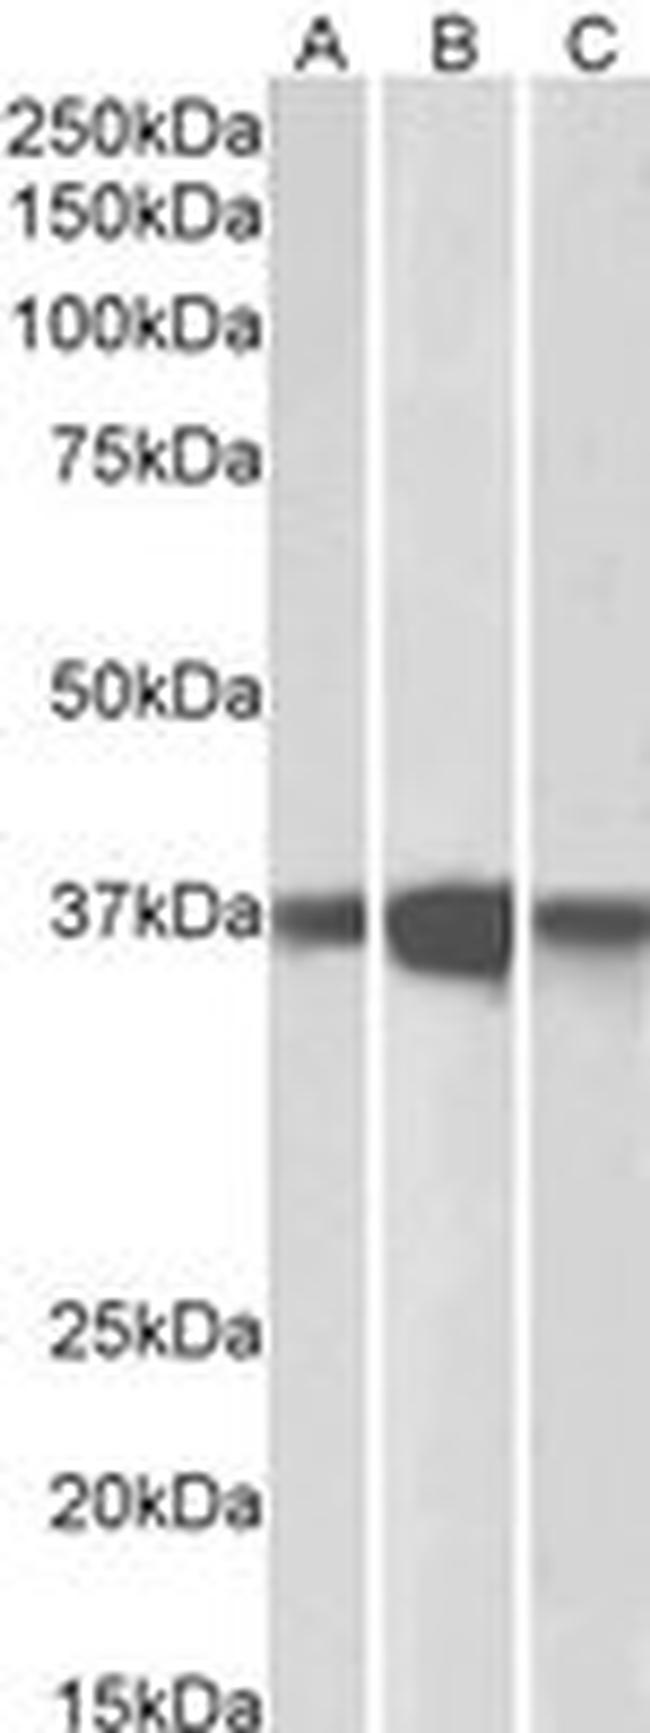 PP2A alpha/beta Antibody (PA5-17980) in Western Blot